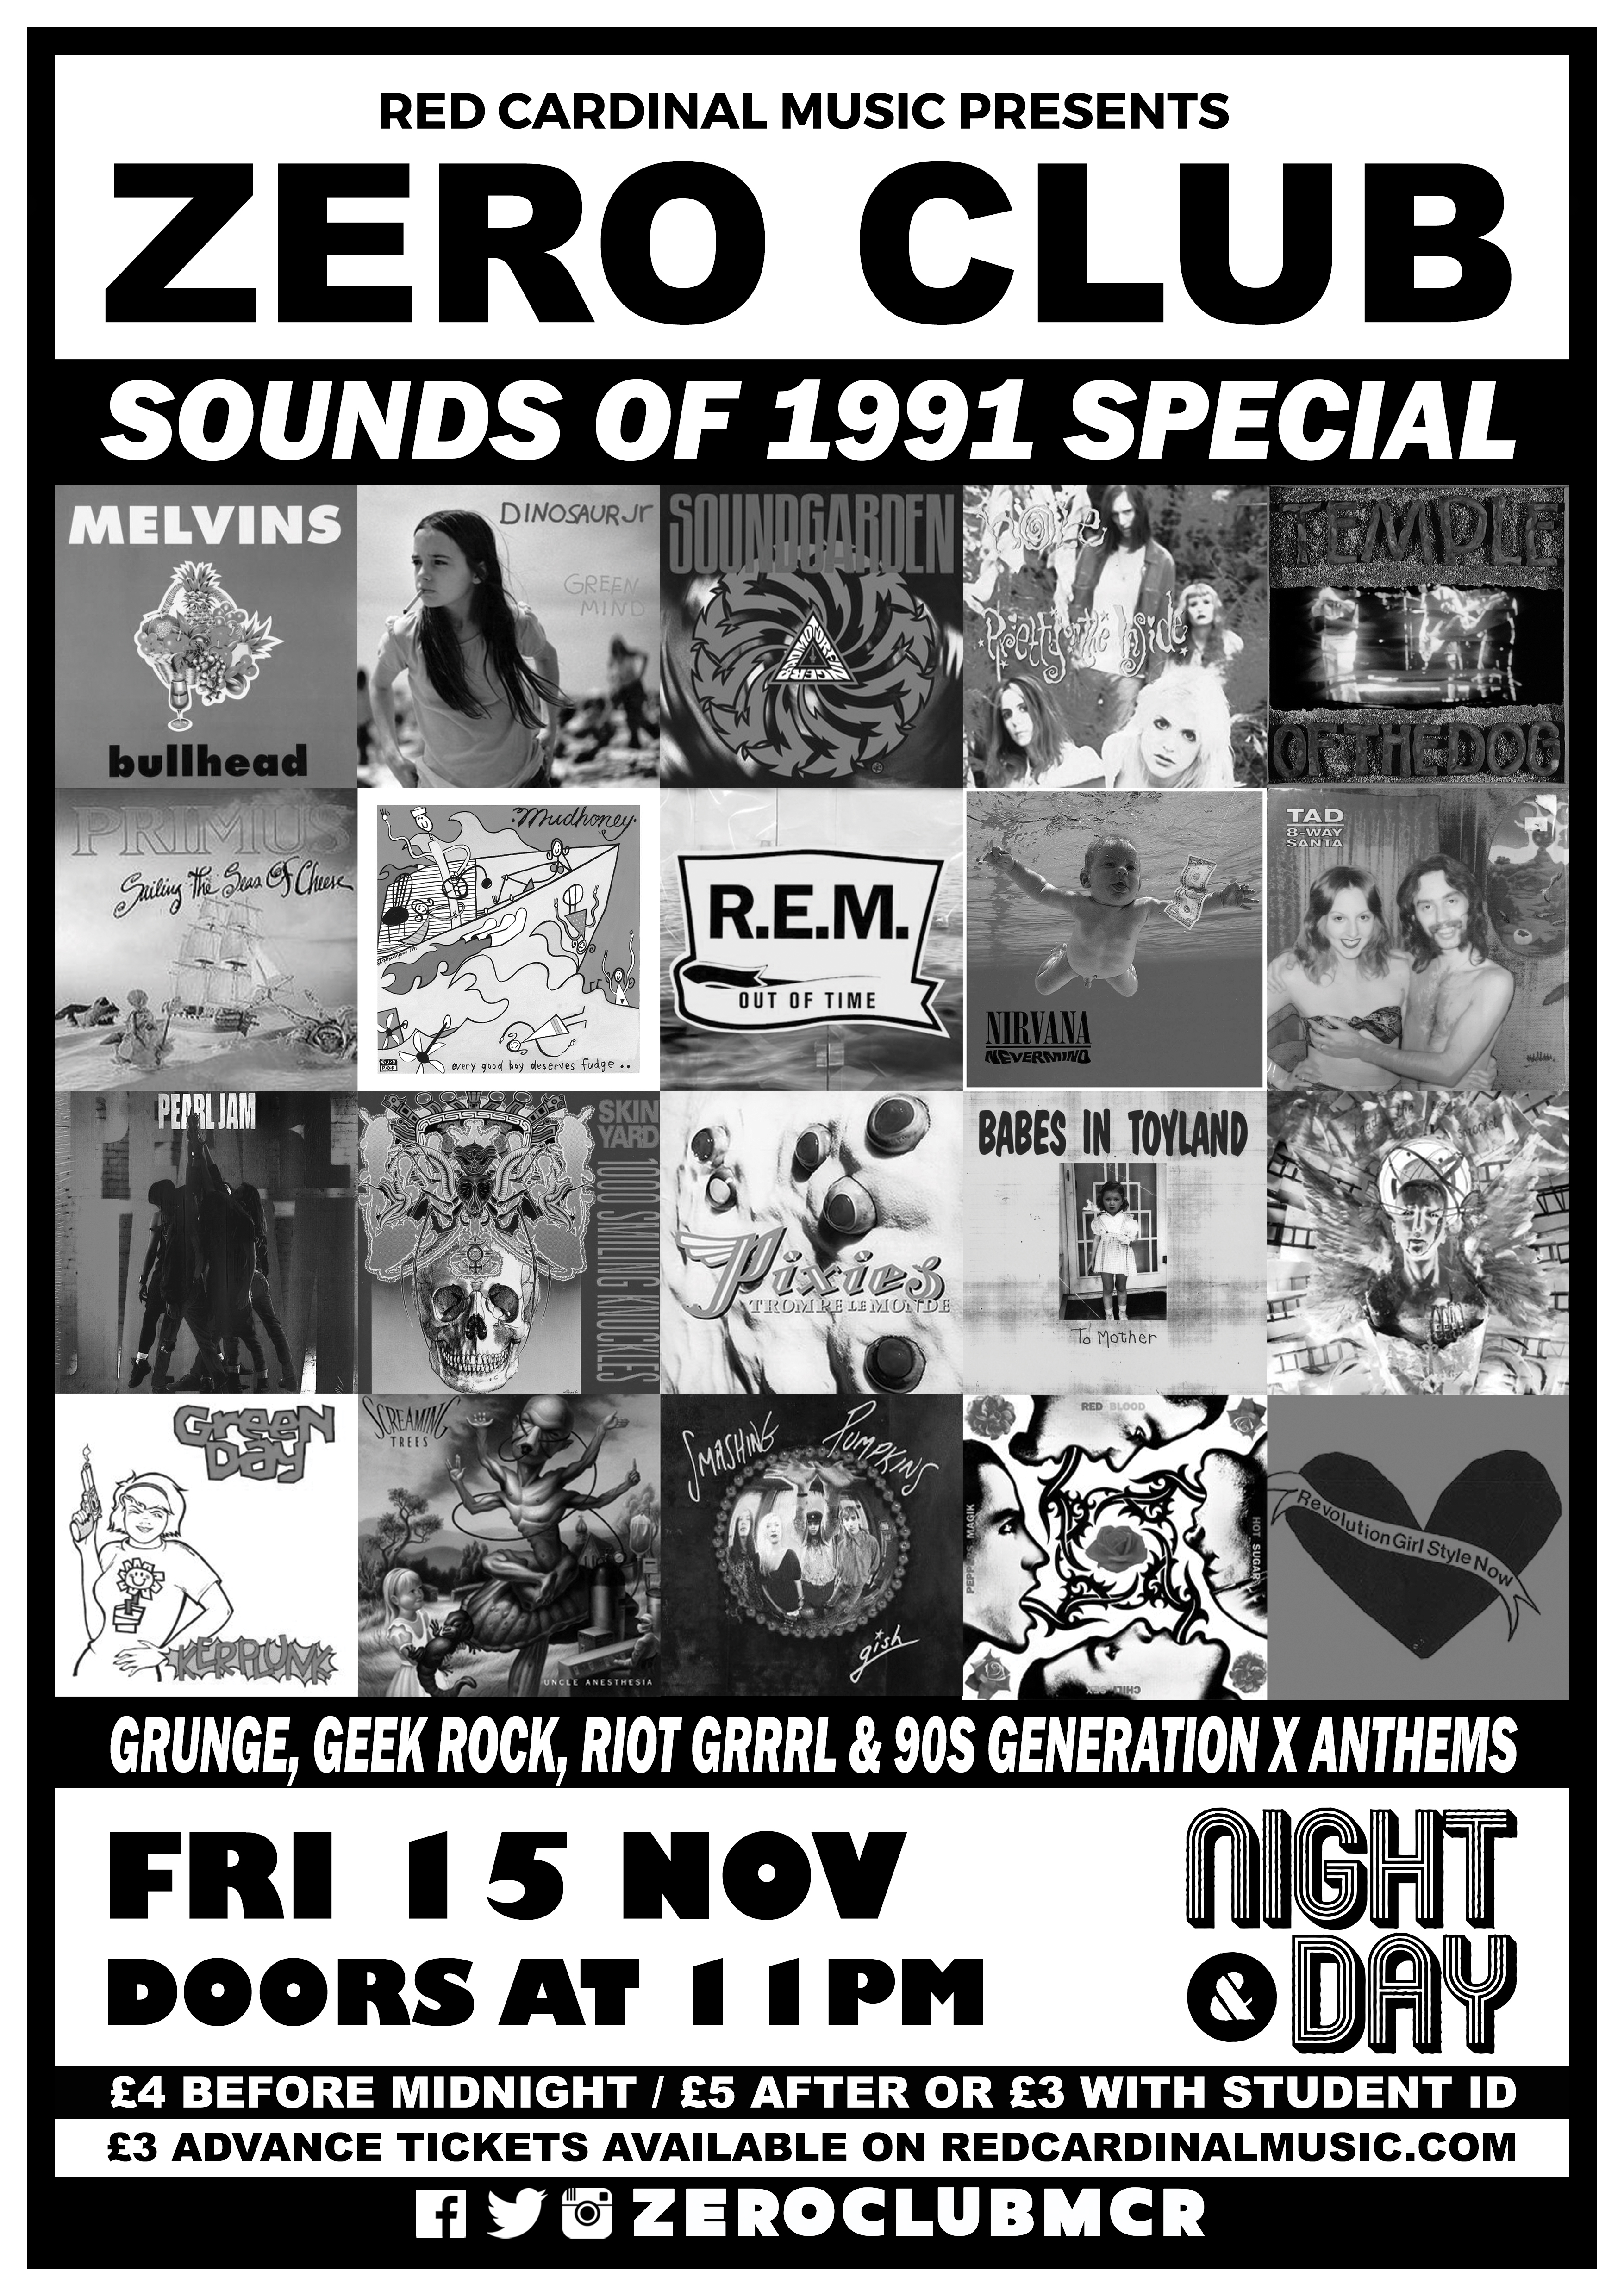 Zero Club - Nov 19 - Sounds of 1991 - Grunge, Riot Grrrl, Generation X,  Red Cardinal Music, Manchester